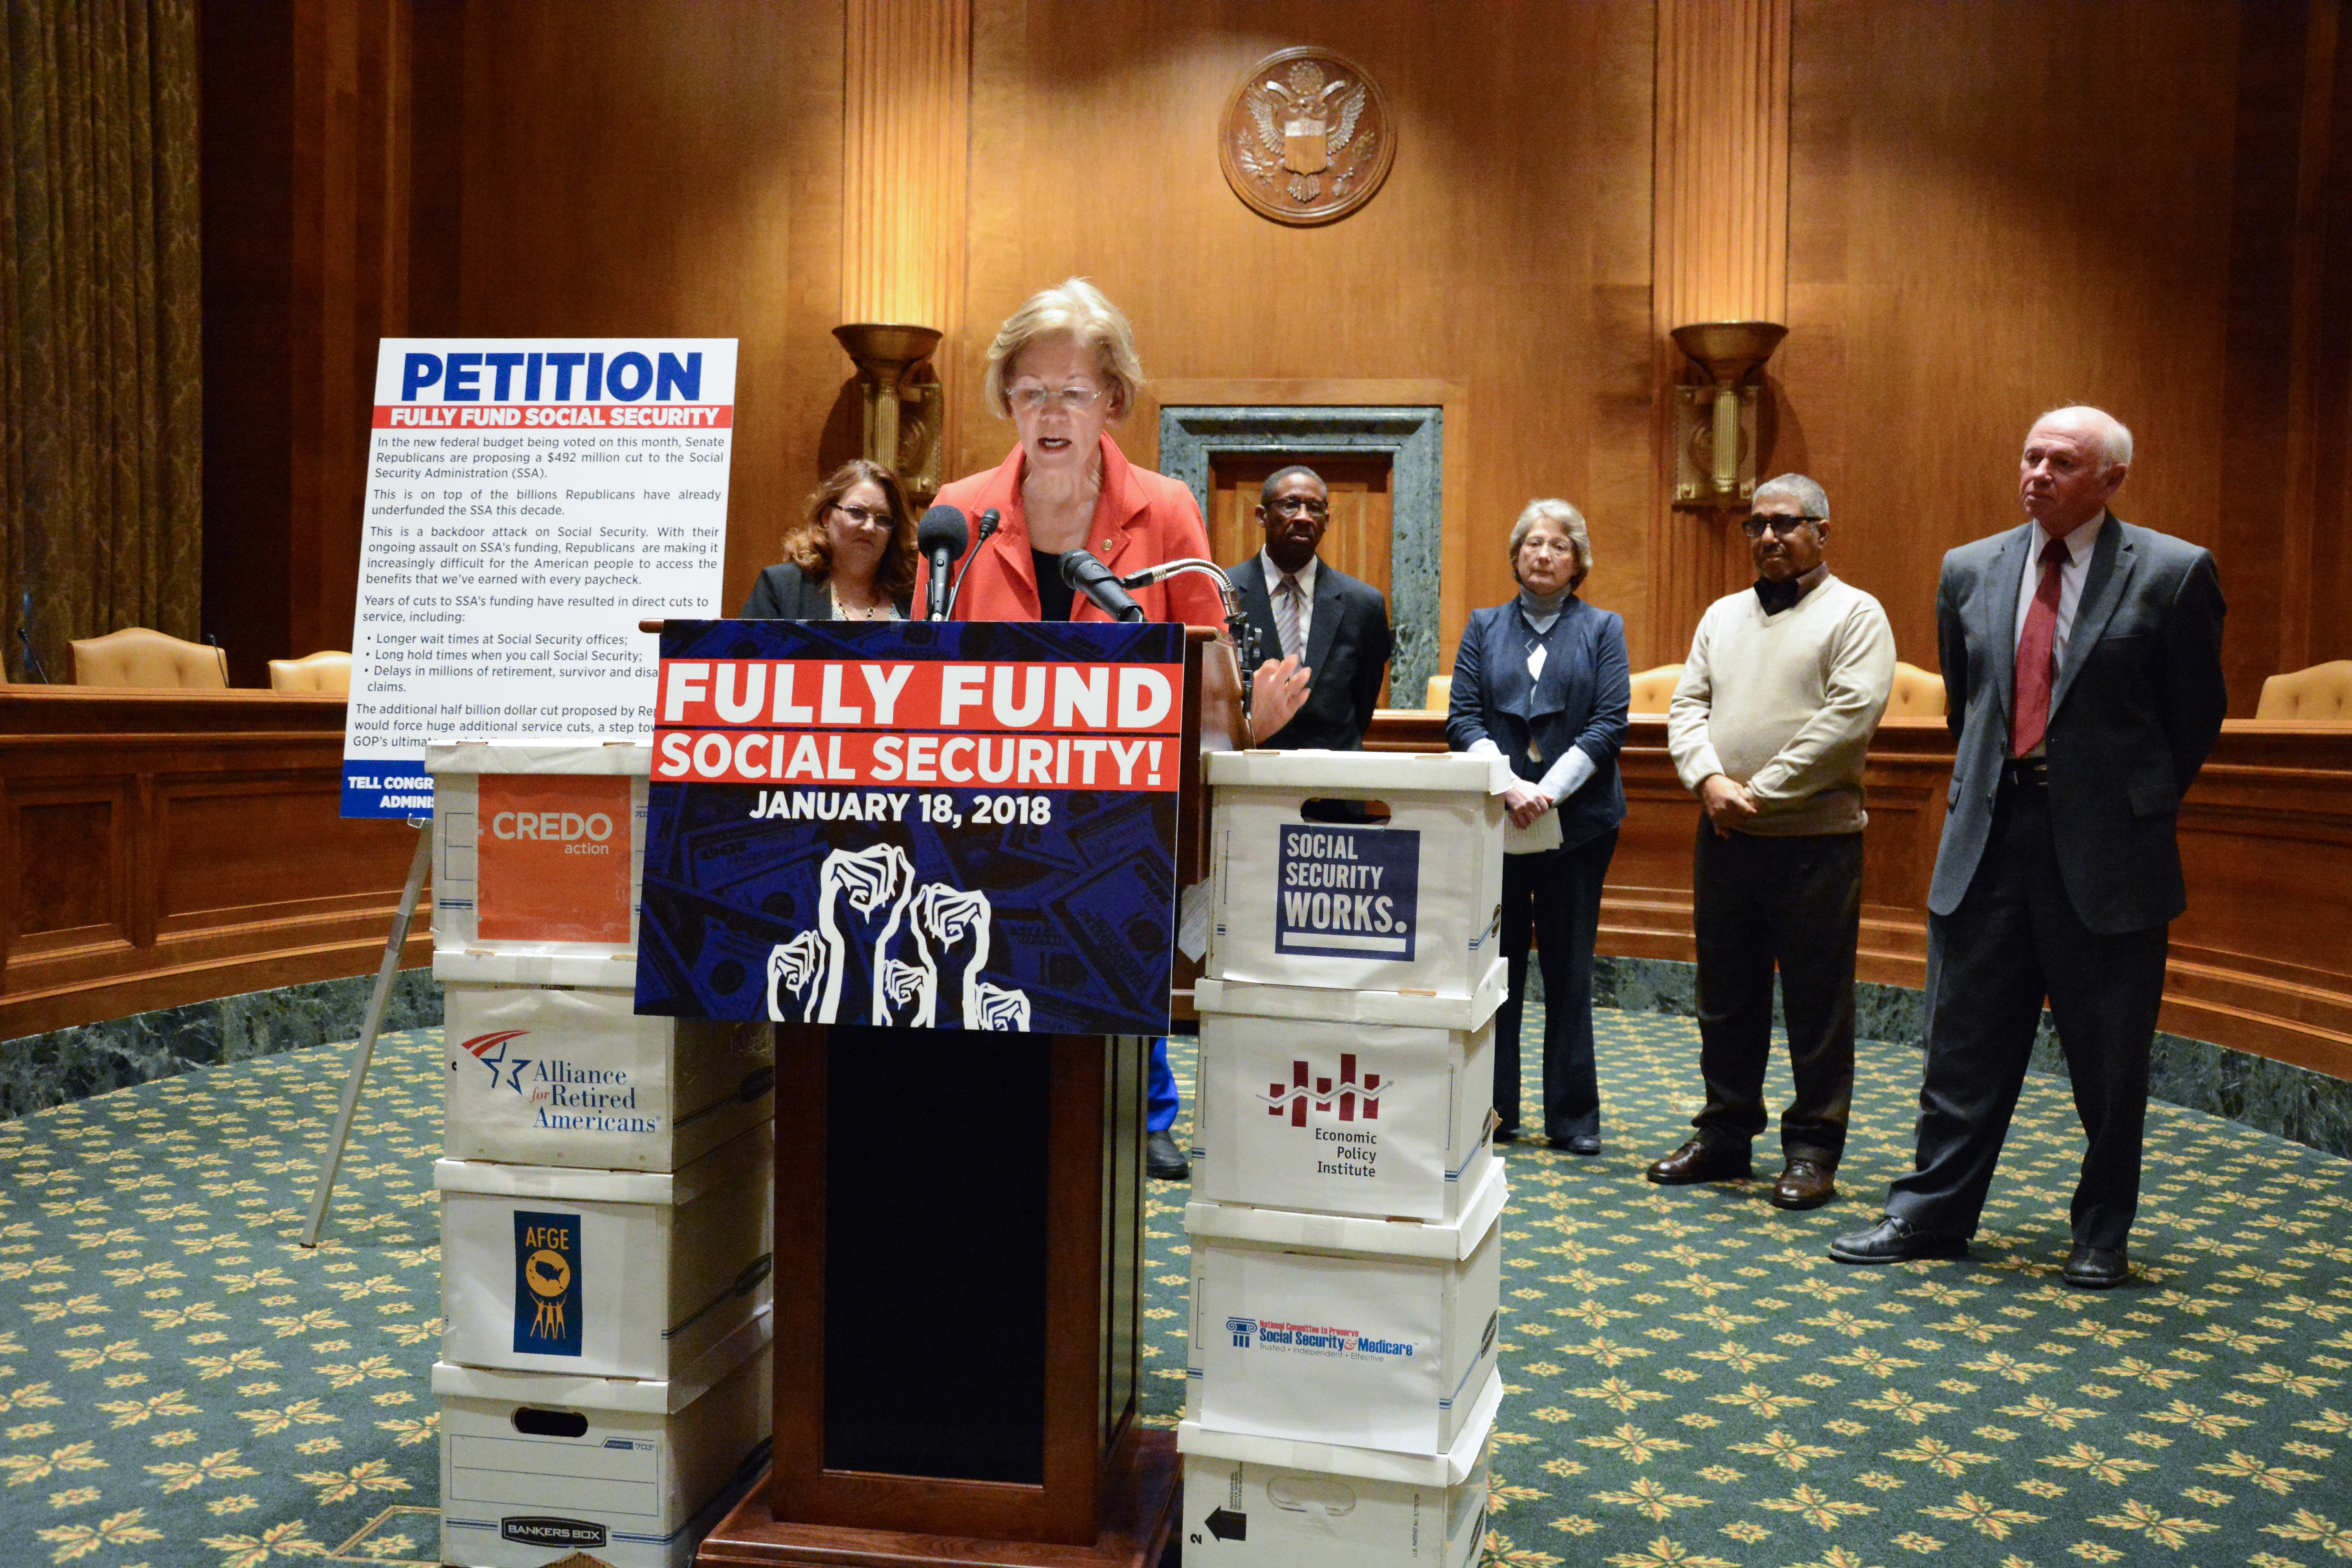 File:Stand Up for Social Security Petition Press Conference